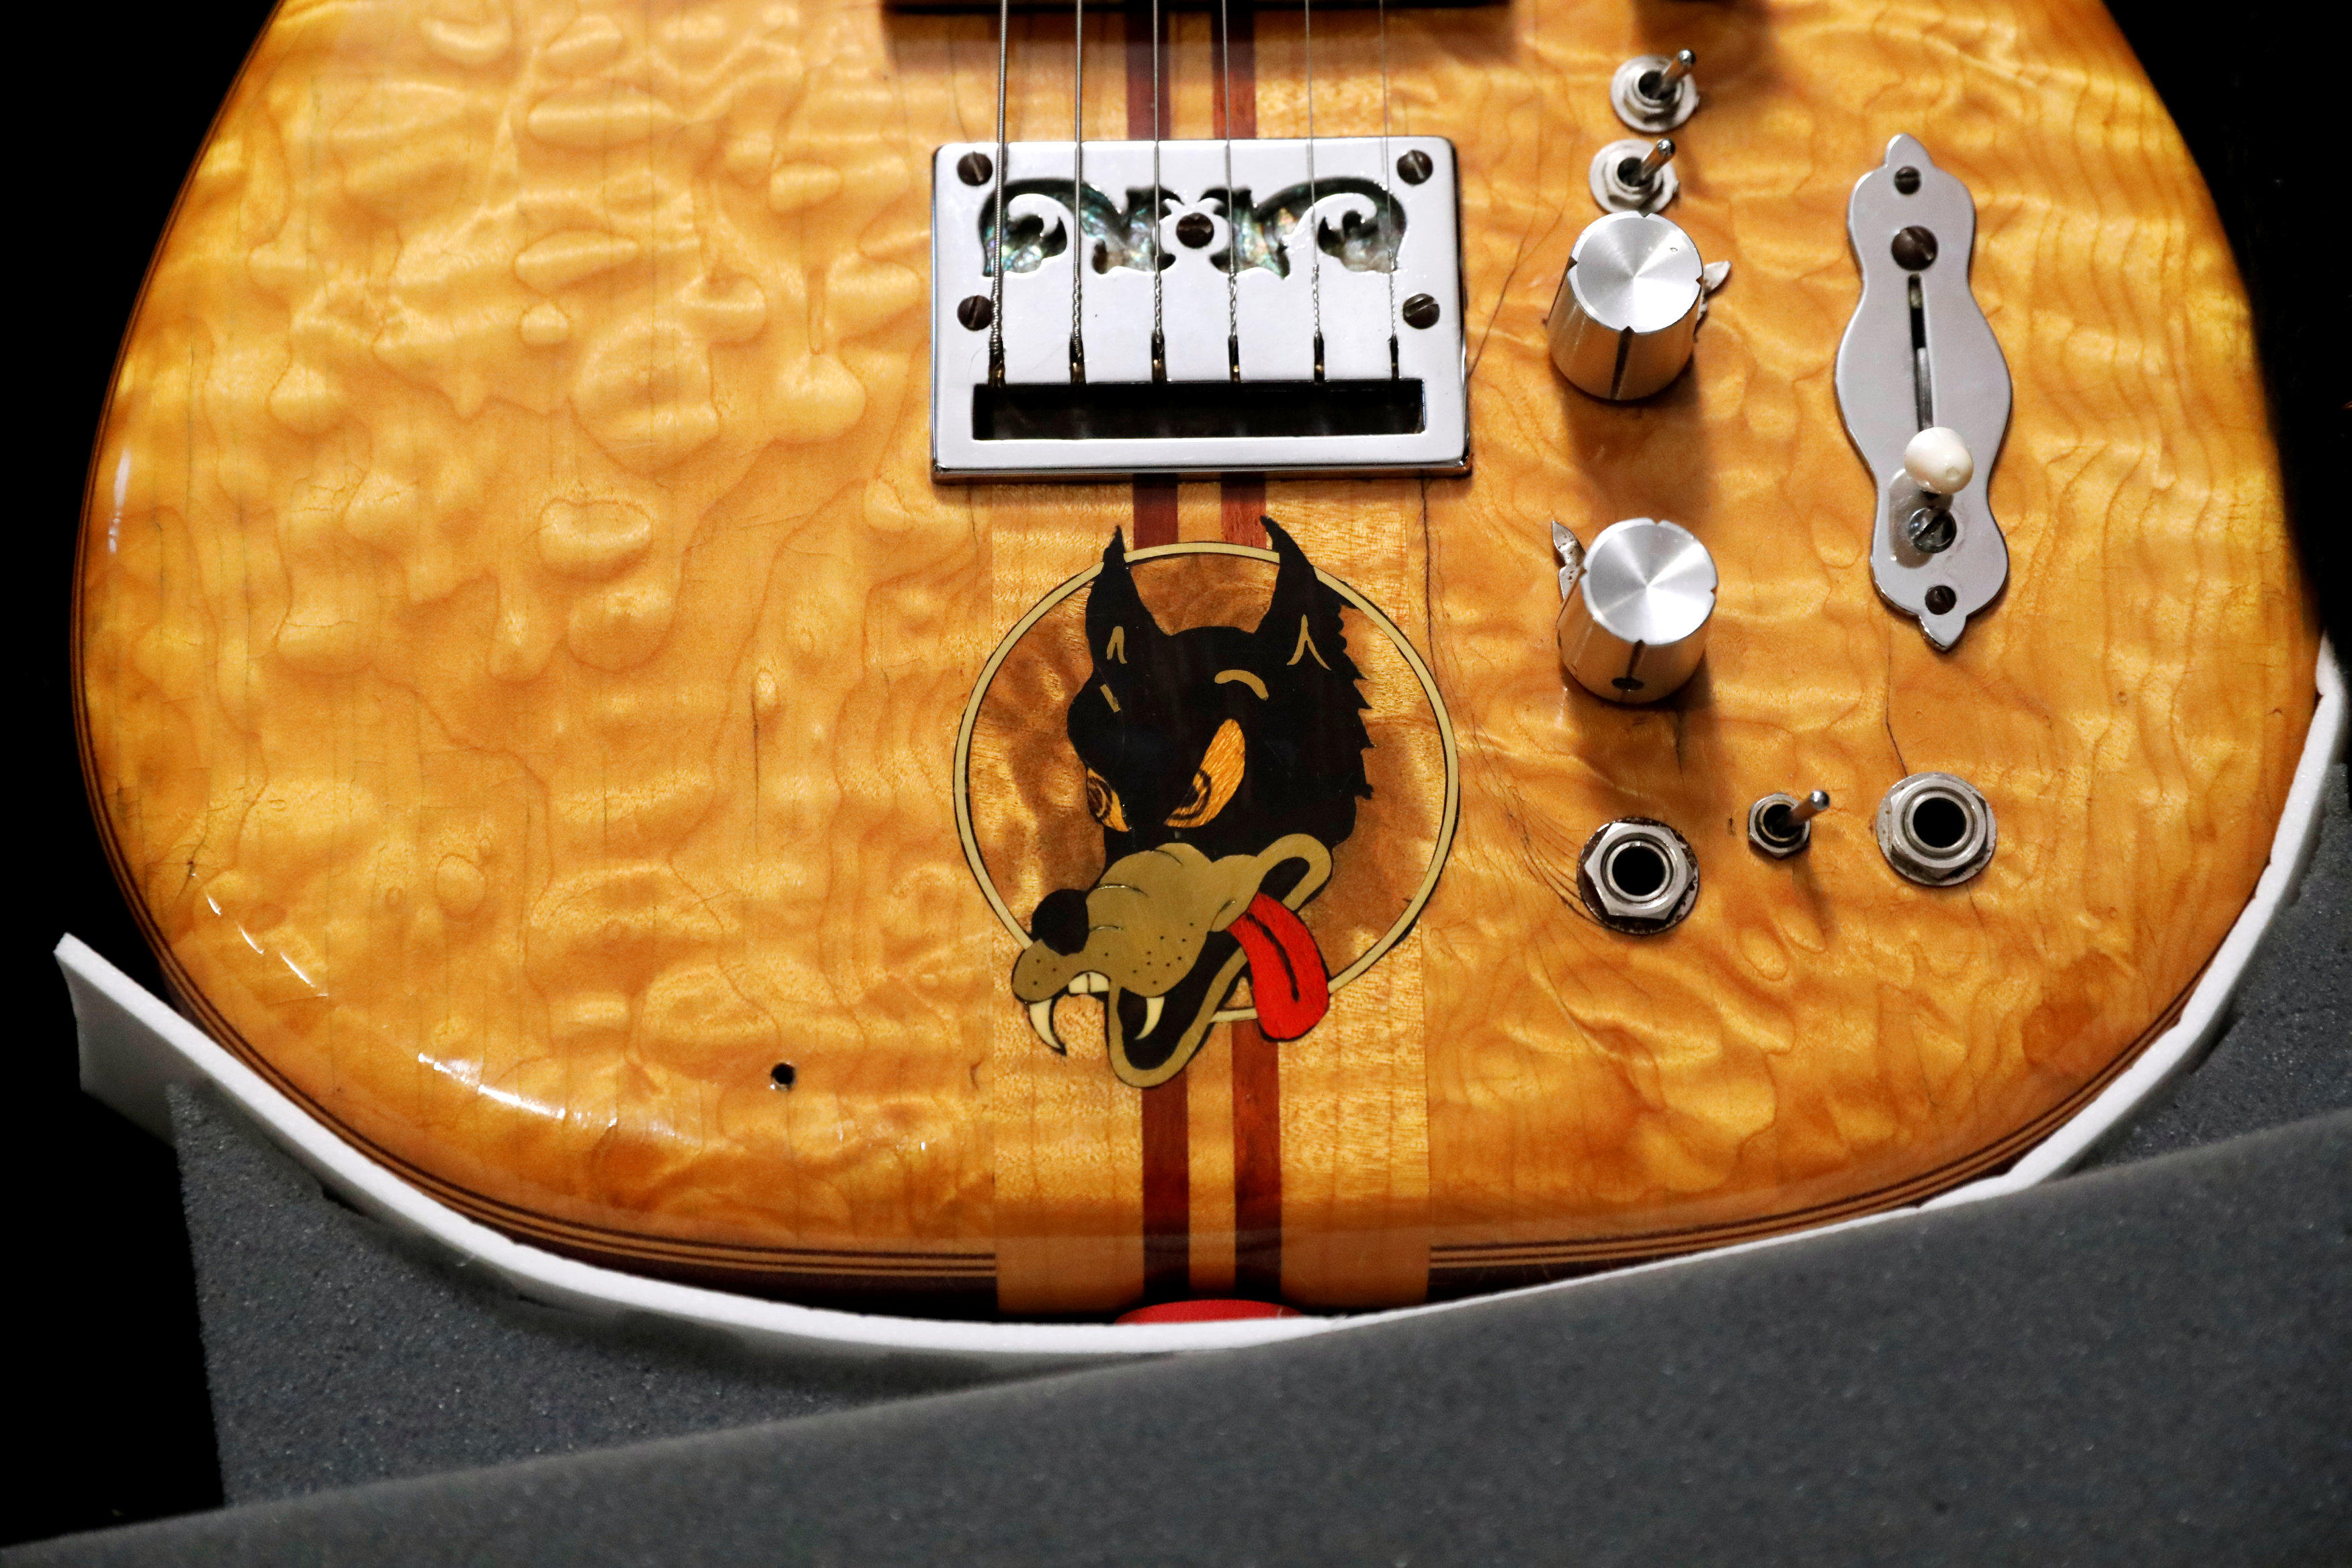 grateful dead 39 s jerry garcia 39 s wolf guitar auctioned for whopping sum cbs news. Black Bedroom Furniture Sets. Home Design Ideas